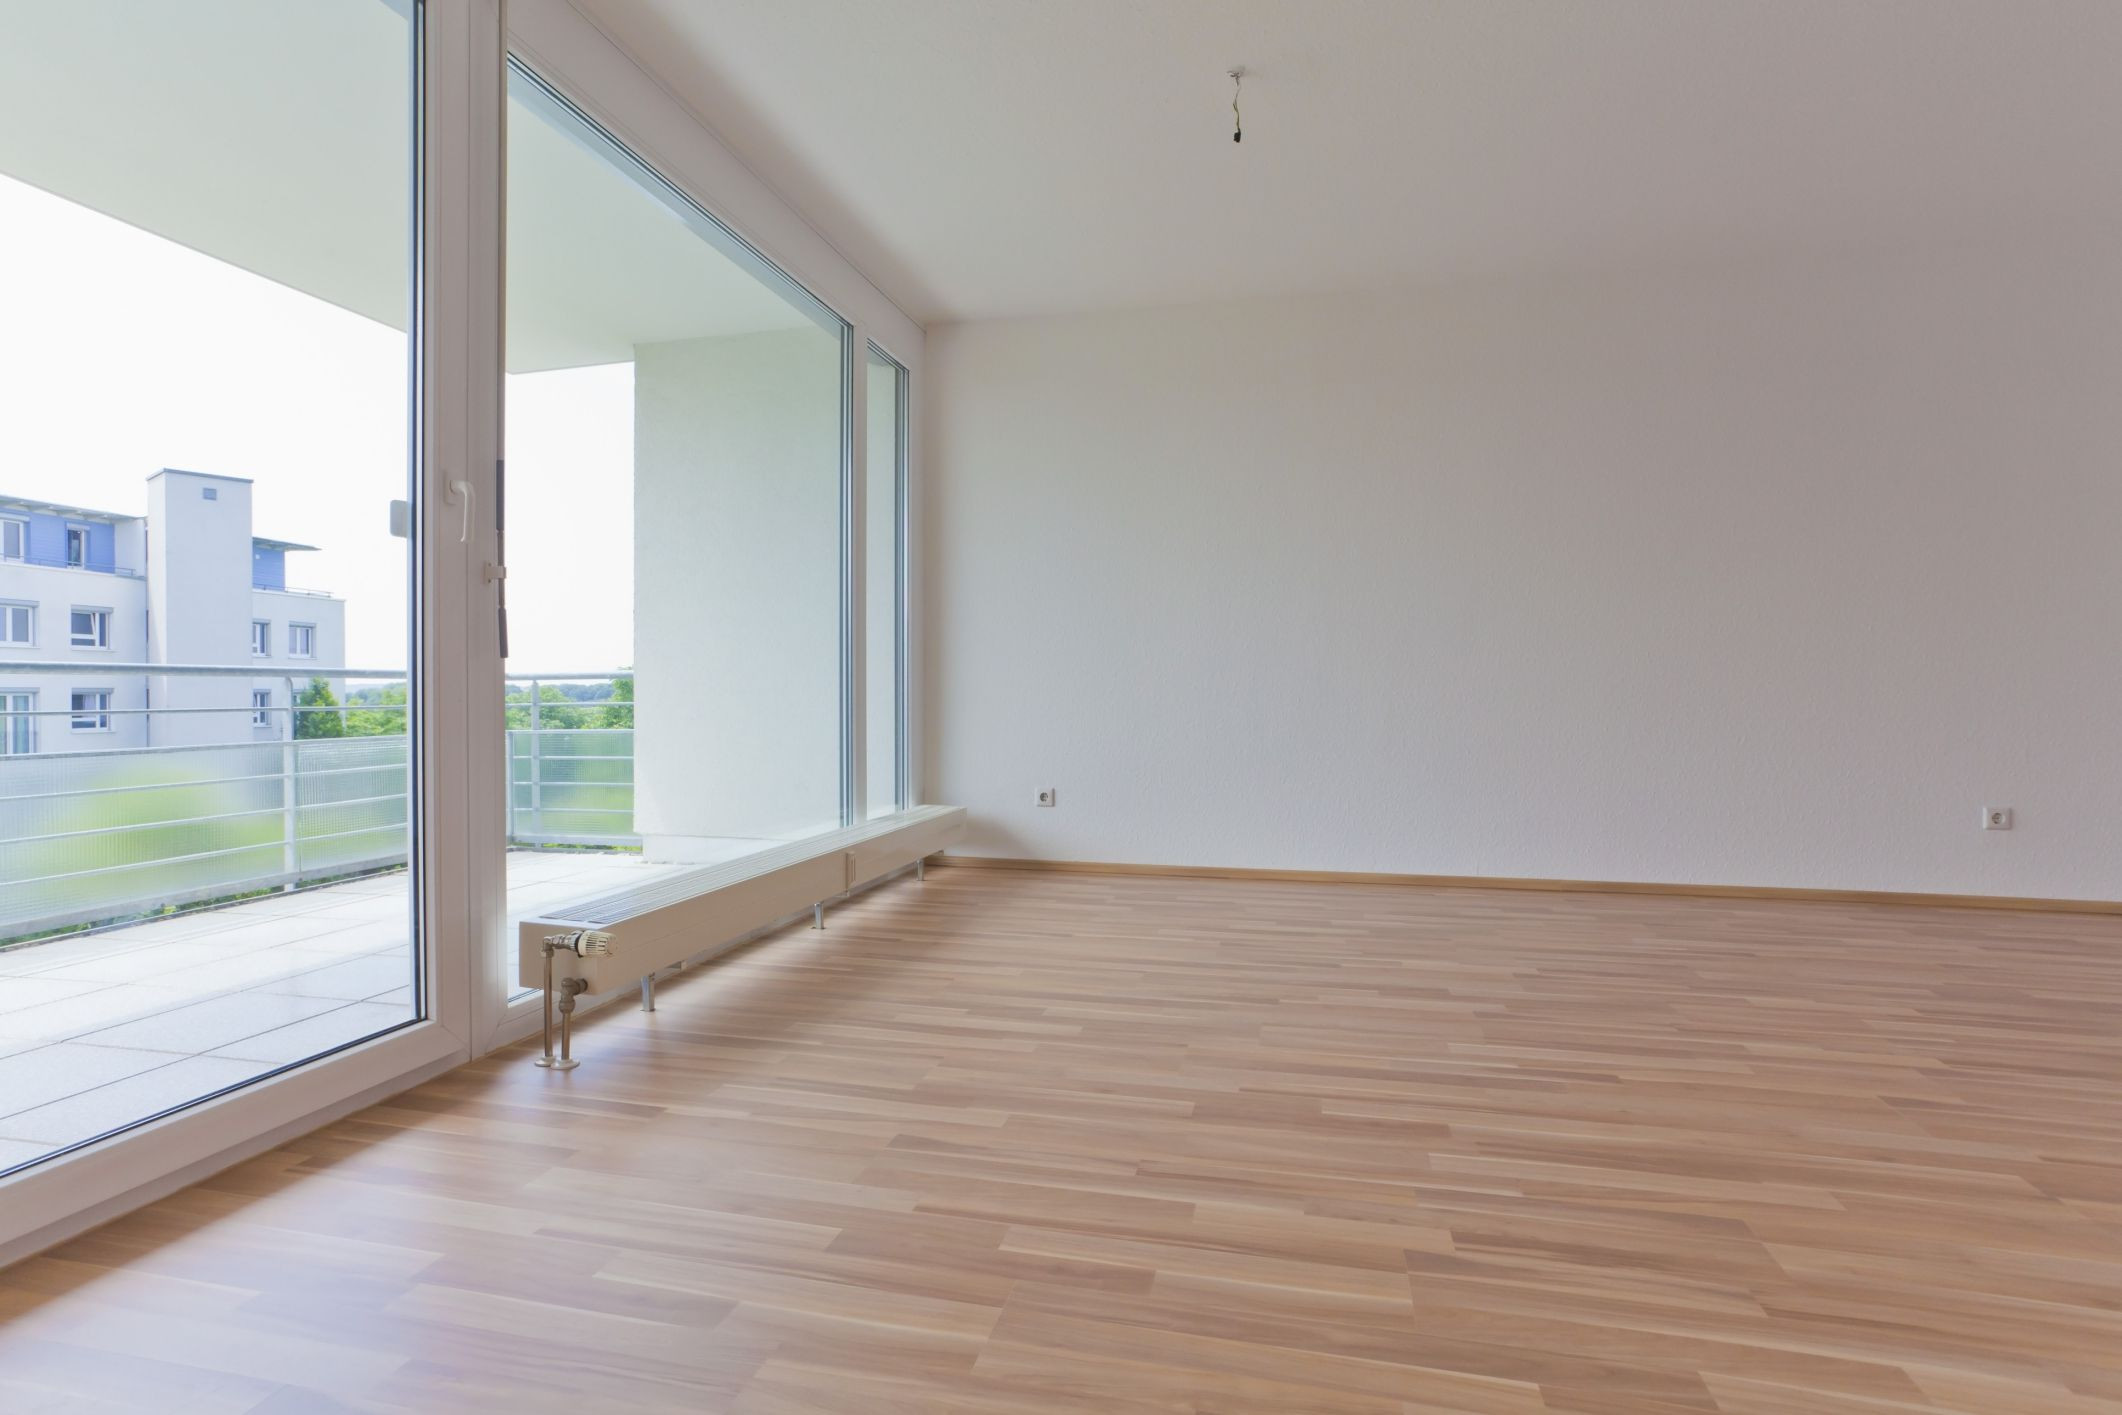 power jack hardwood floor of its easy and fast to install plank vinyl flooring intended for plank vinyl flooring 155786902 56a4a0553df78cf7728350af